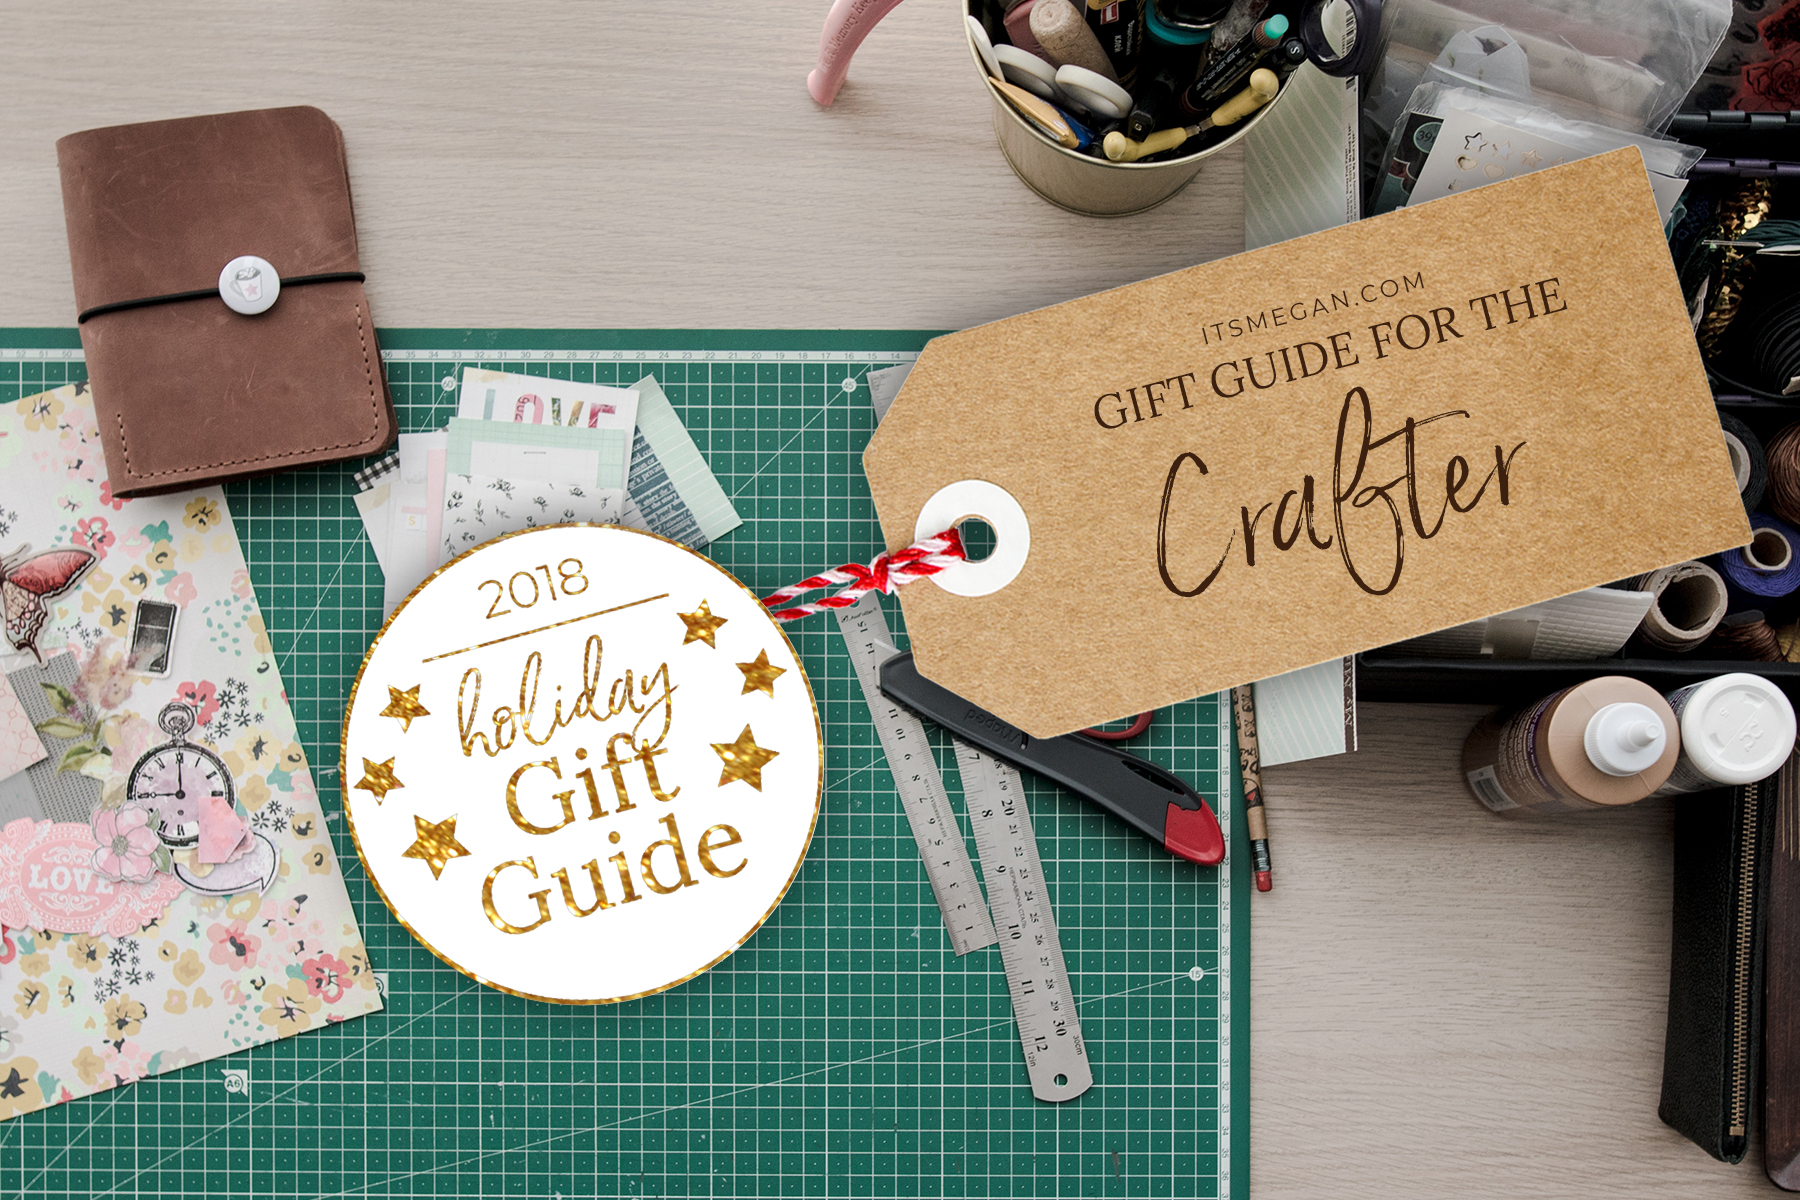 A Gift Guide for the Crafter   It's Megan   #christmas #gift #presents #giftguide